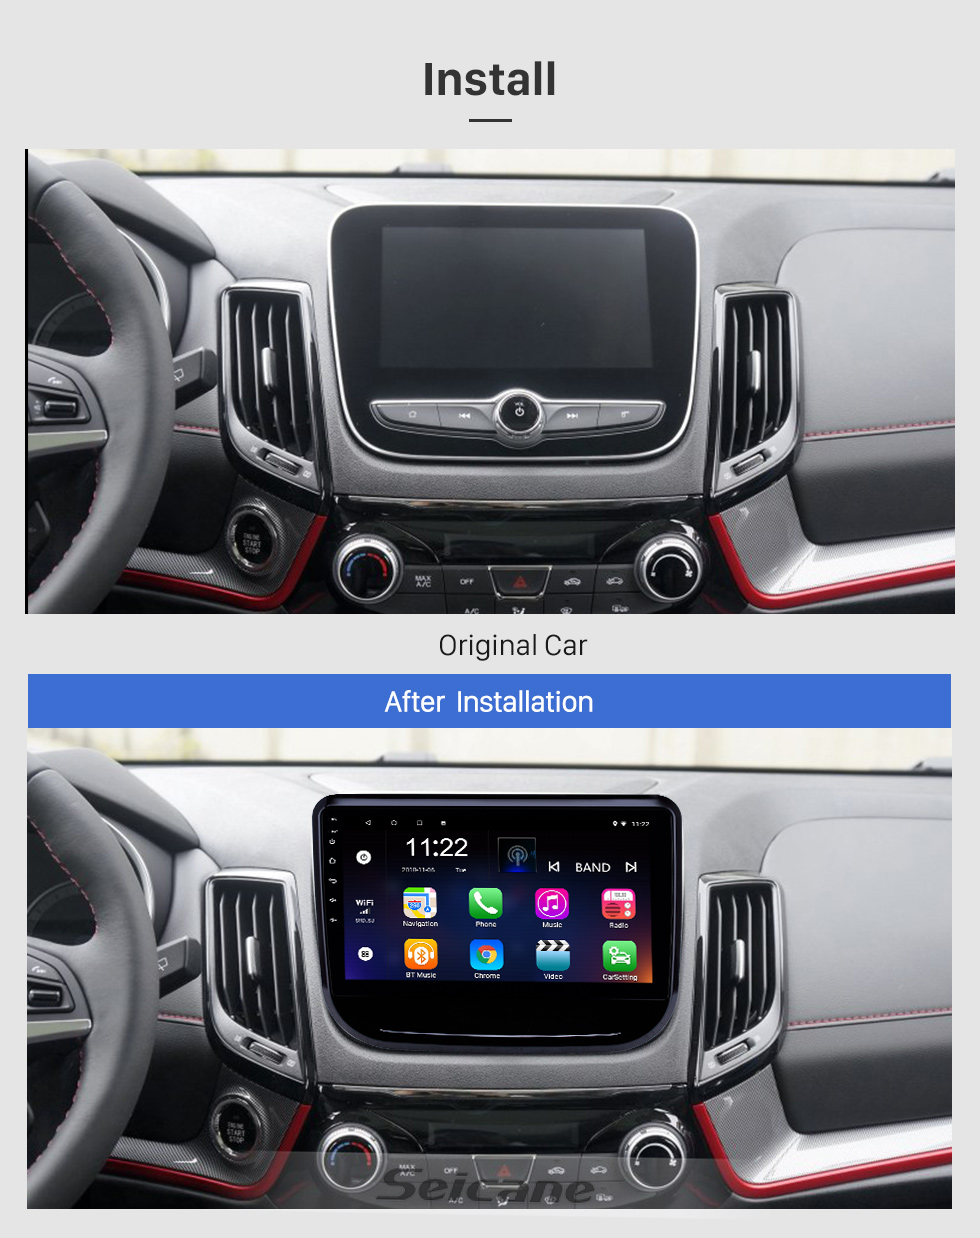 Seicane 10,1 pouces Android 8.1 Radio de navigation GPS pour 2017-2018 Changan CS55 avec support tactile Bluetooth Bluetooth USB Carplay TPMS